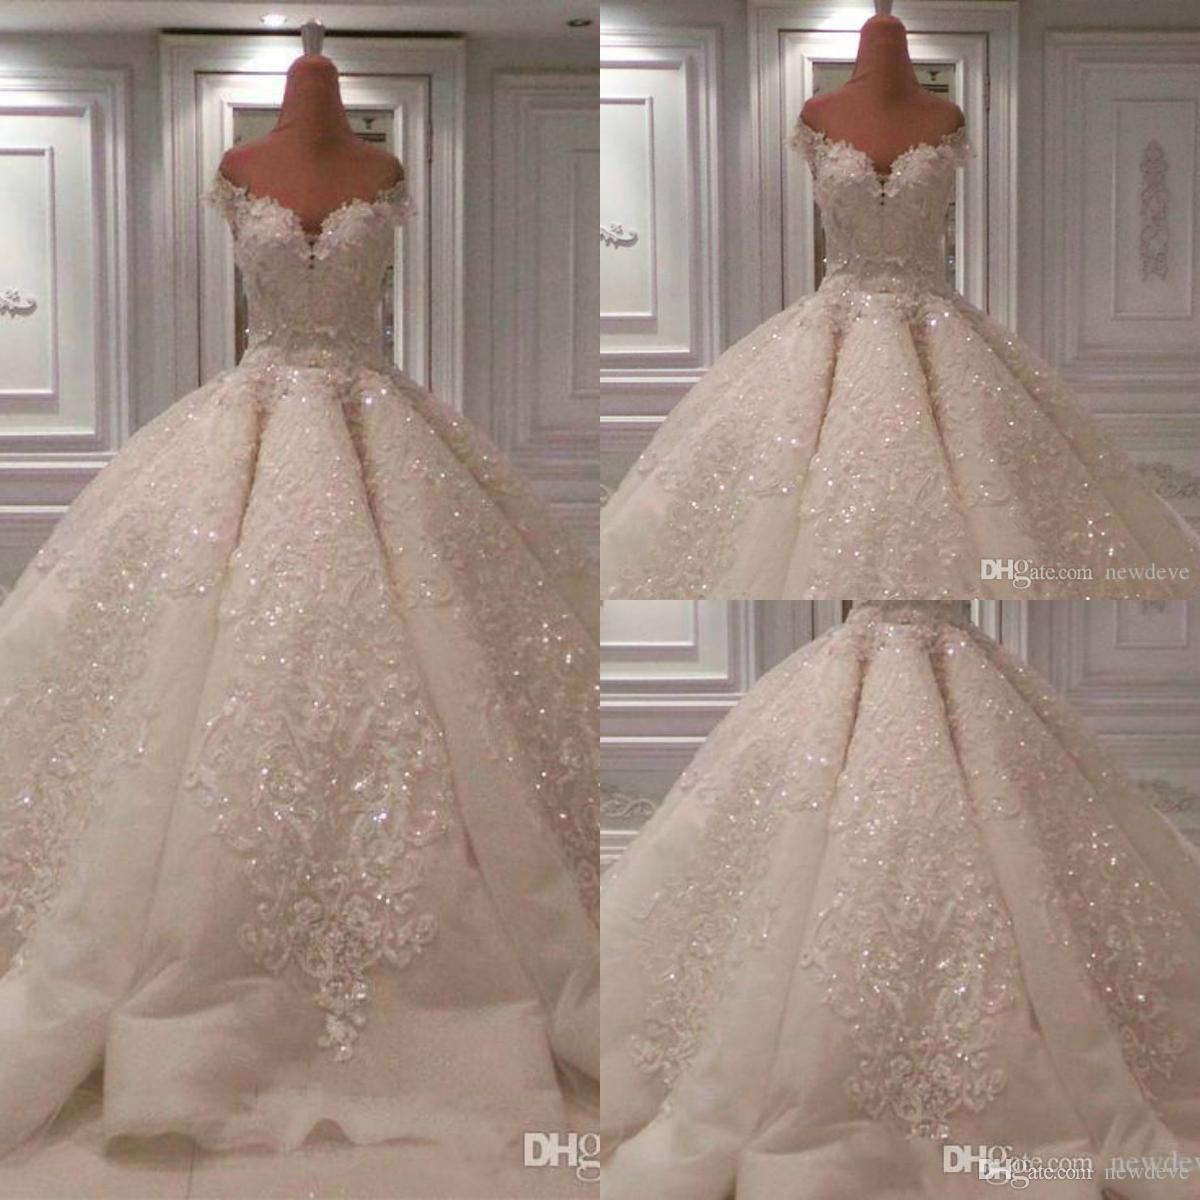 Linen Wedding Dress.Luxury Crystal Wedding Dress Sexy Bling Bling Beaded Lace Ball Gown Weddig Dresses Bridal Gowns Custom Made